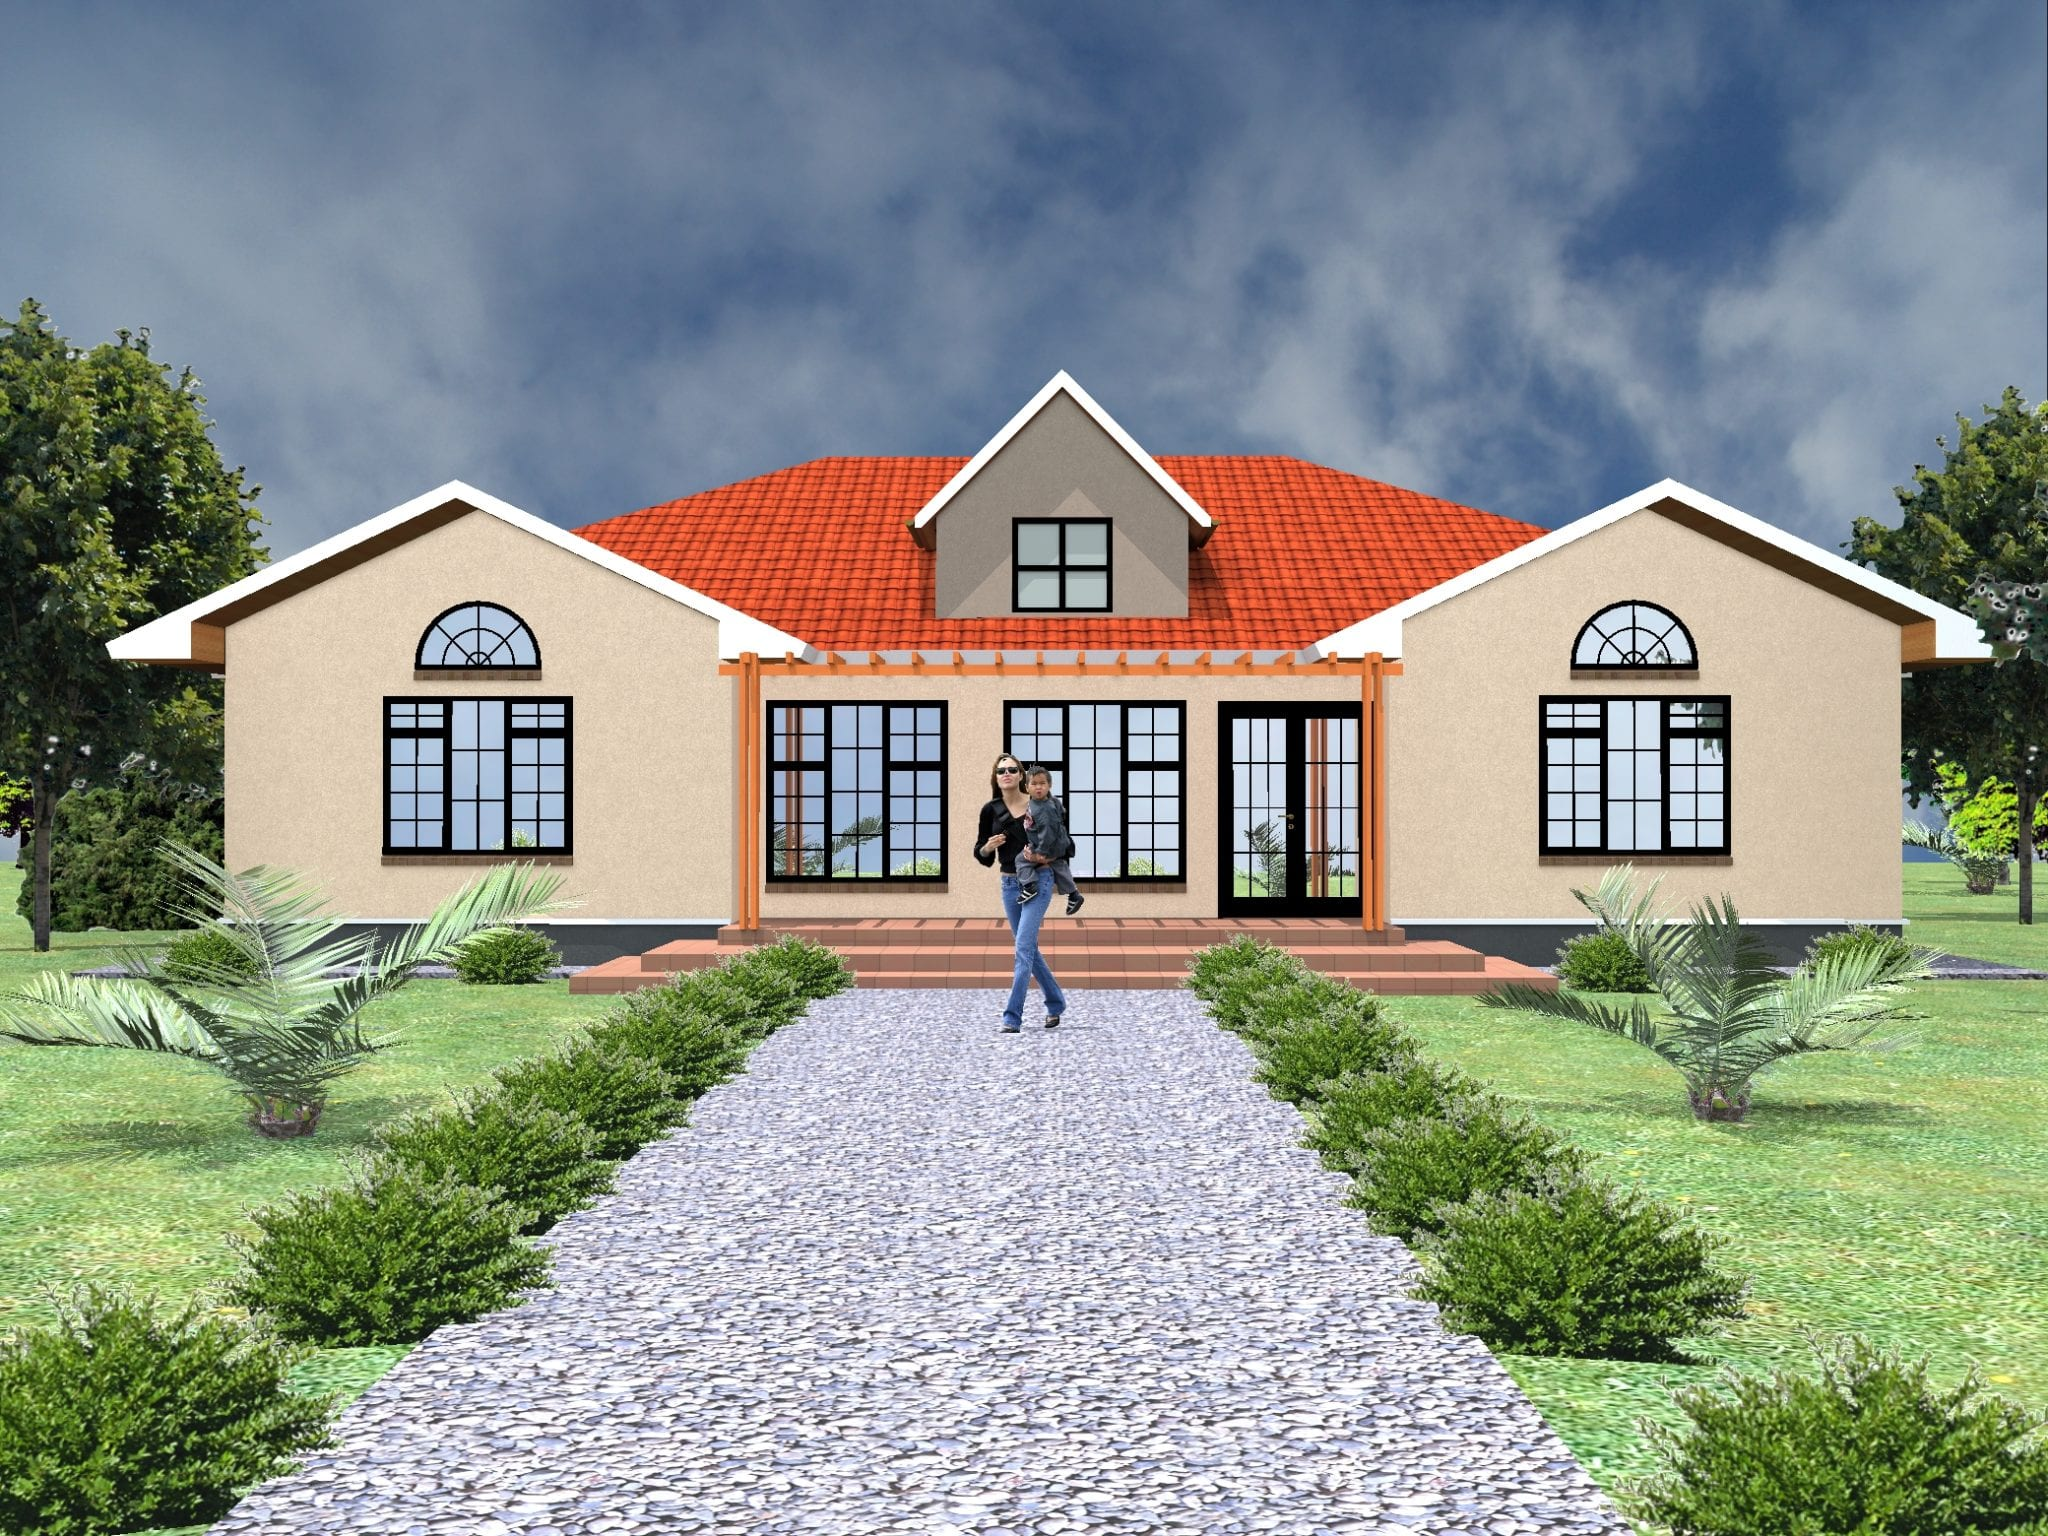 5 Bedroom House Designs House Plans And Designs